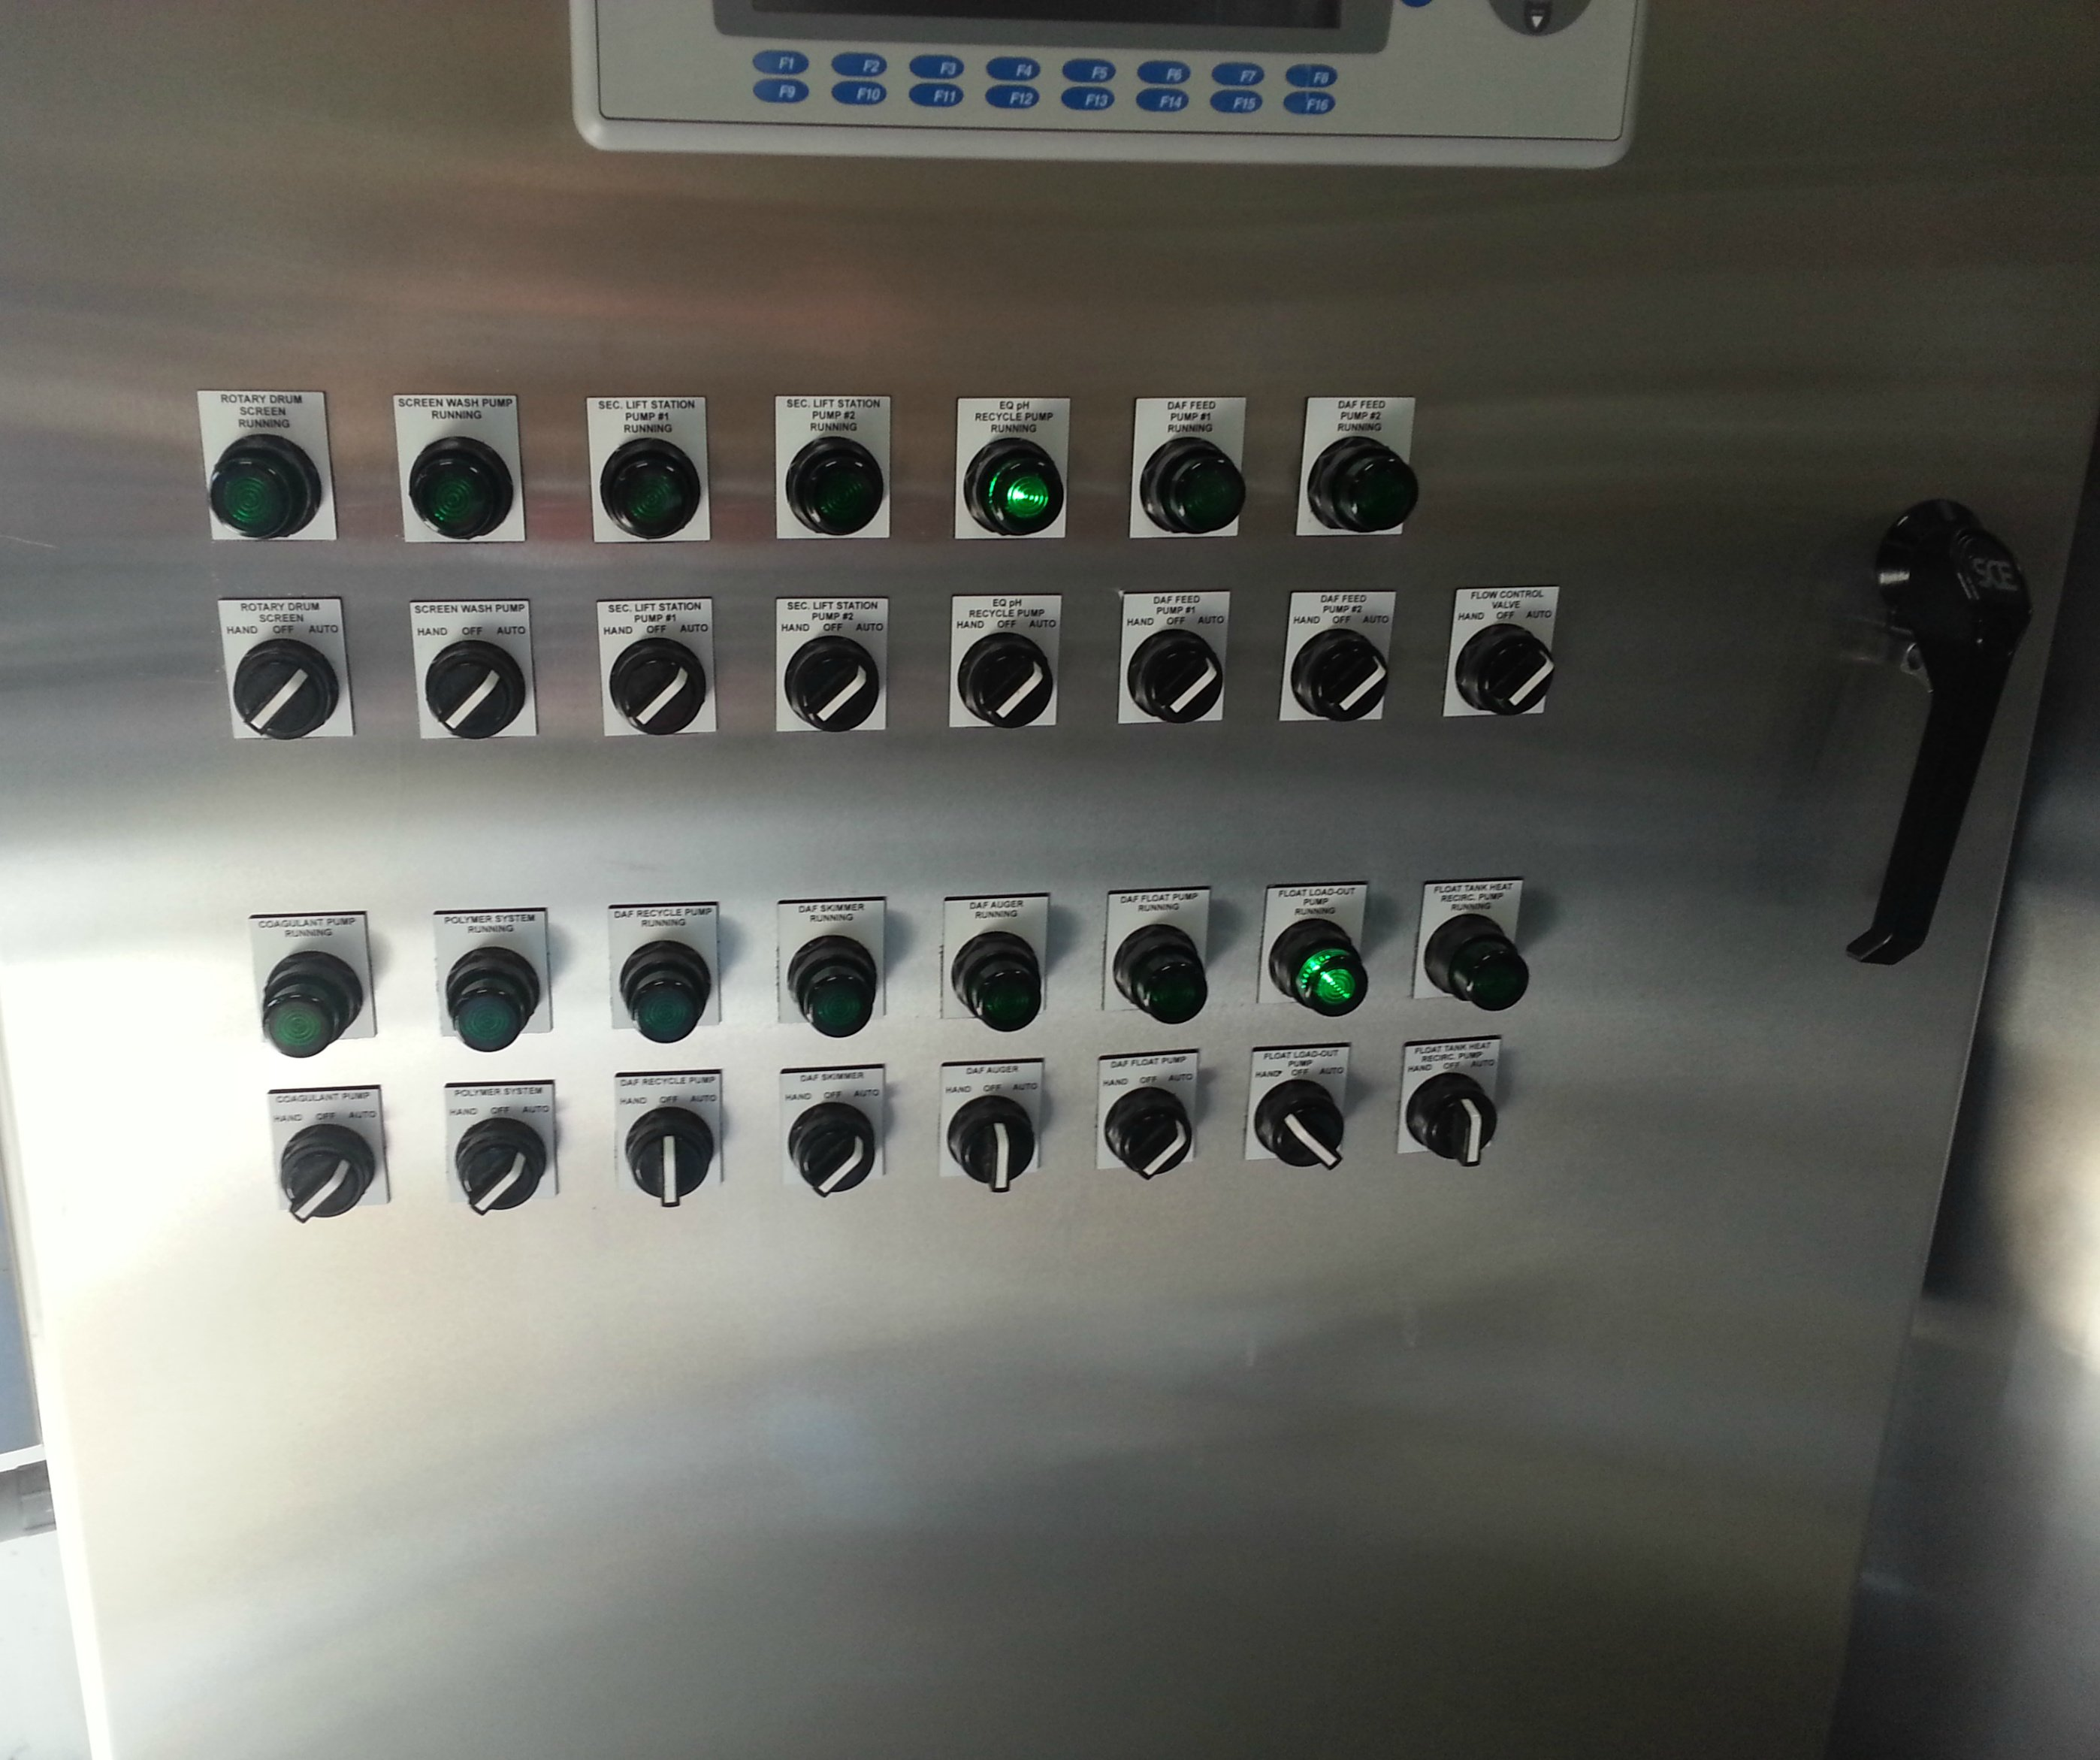 https://0201.nccdn.net/1_2/000/000/12d/fe7/PushButton-Lights-Panel1-2795x2342.jpg